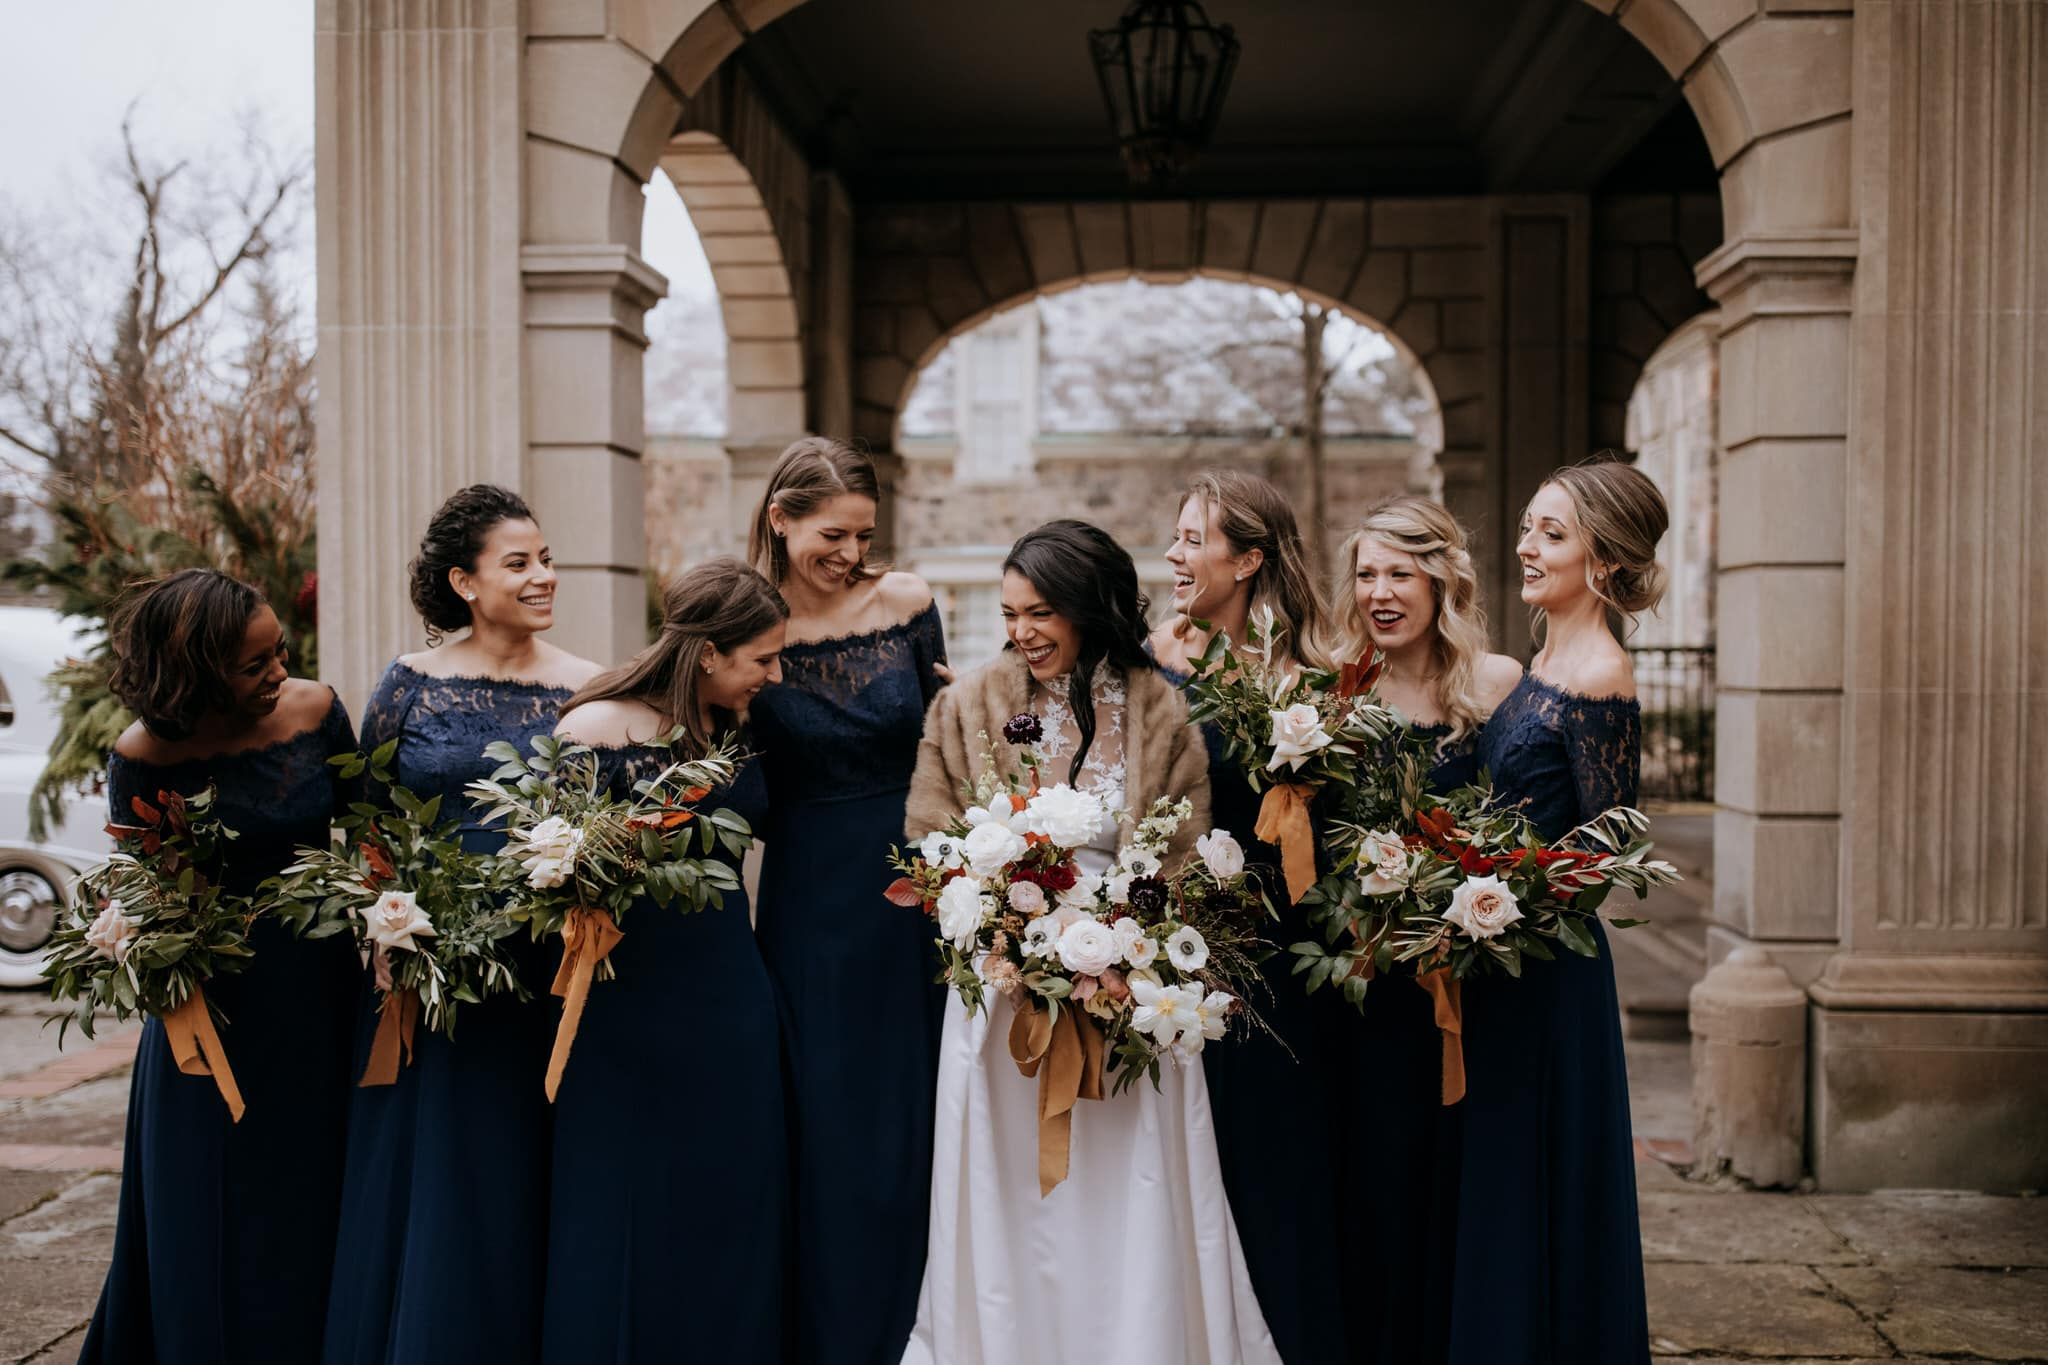 Bridal party at Graydon Hall Manor Wedding in Toronto